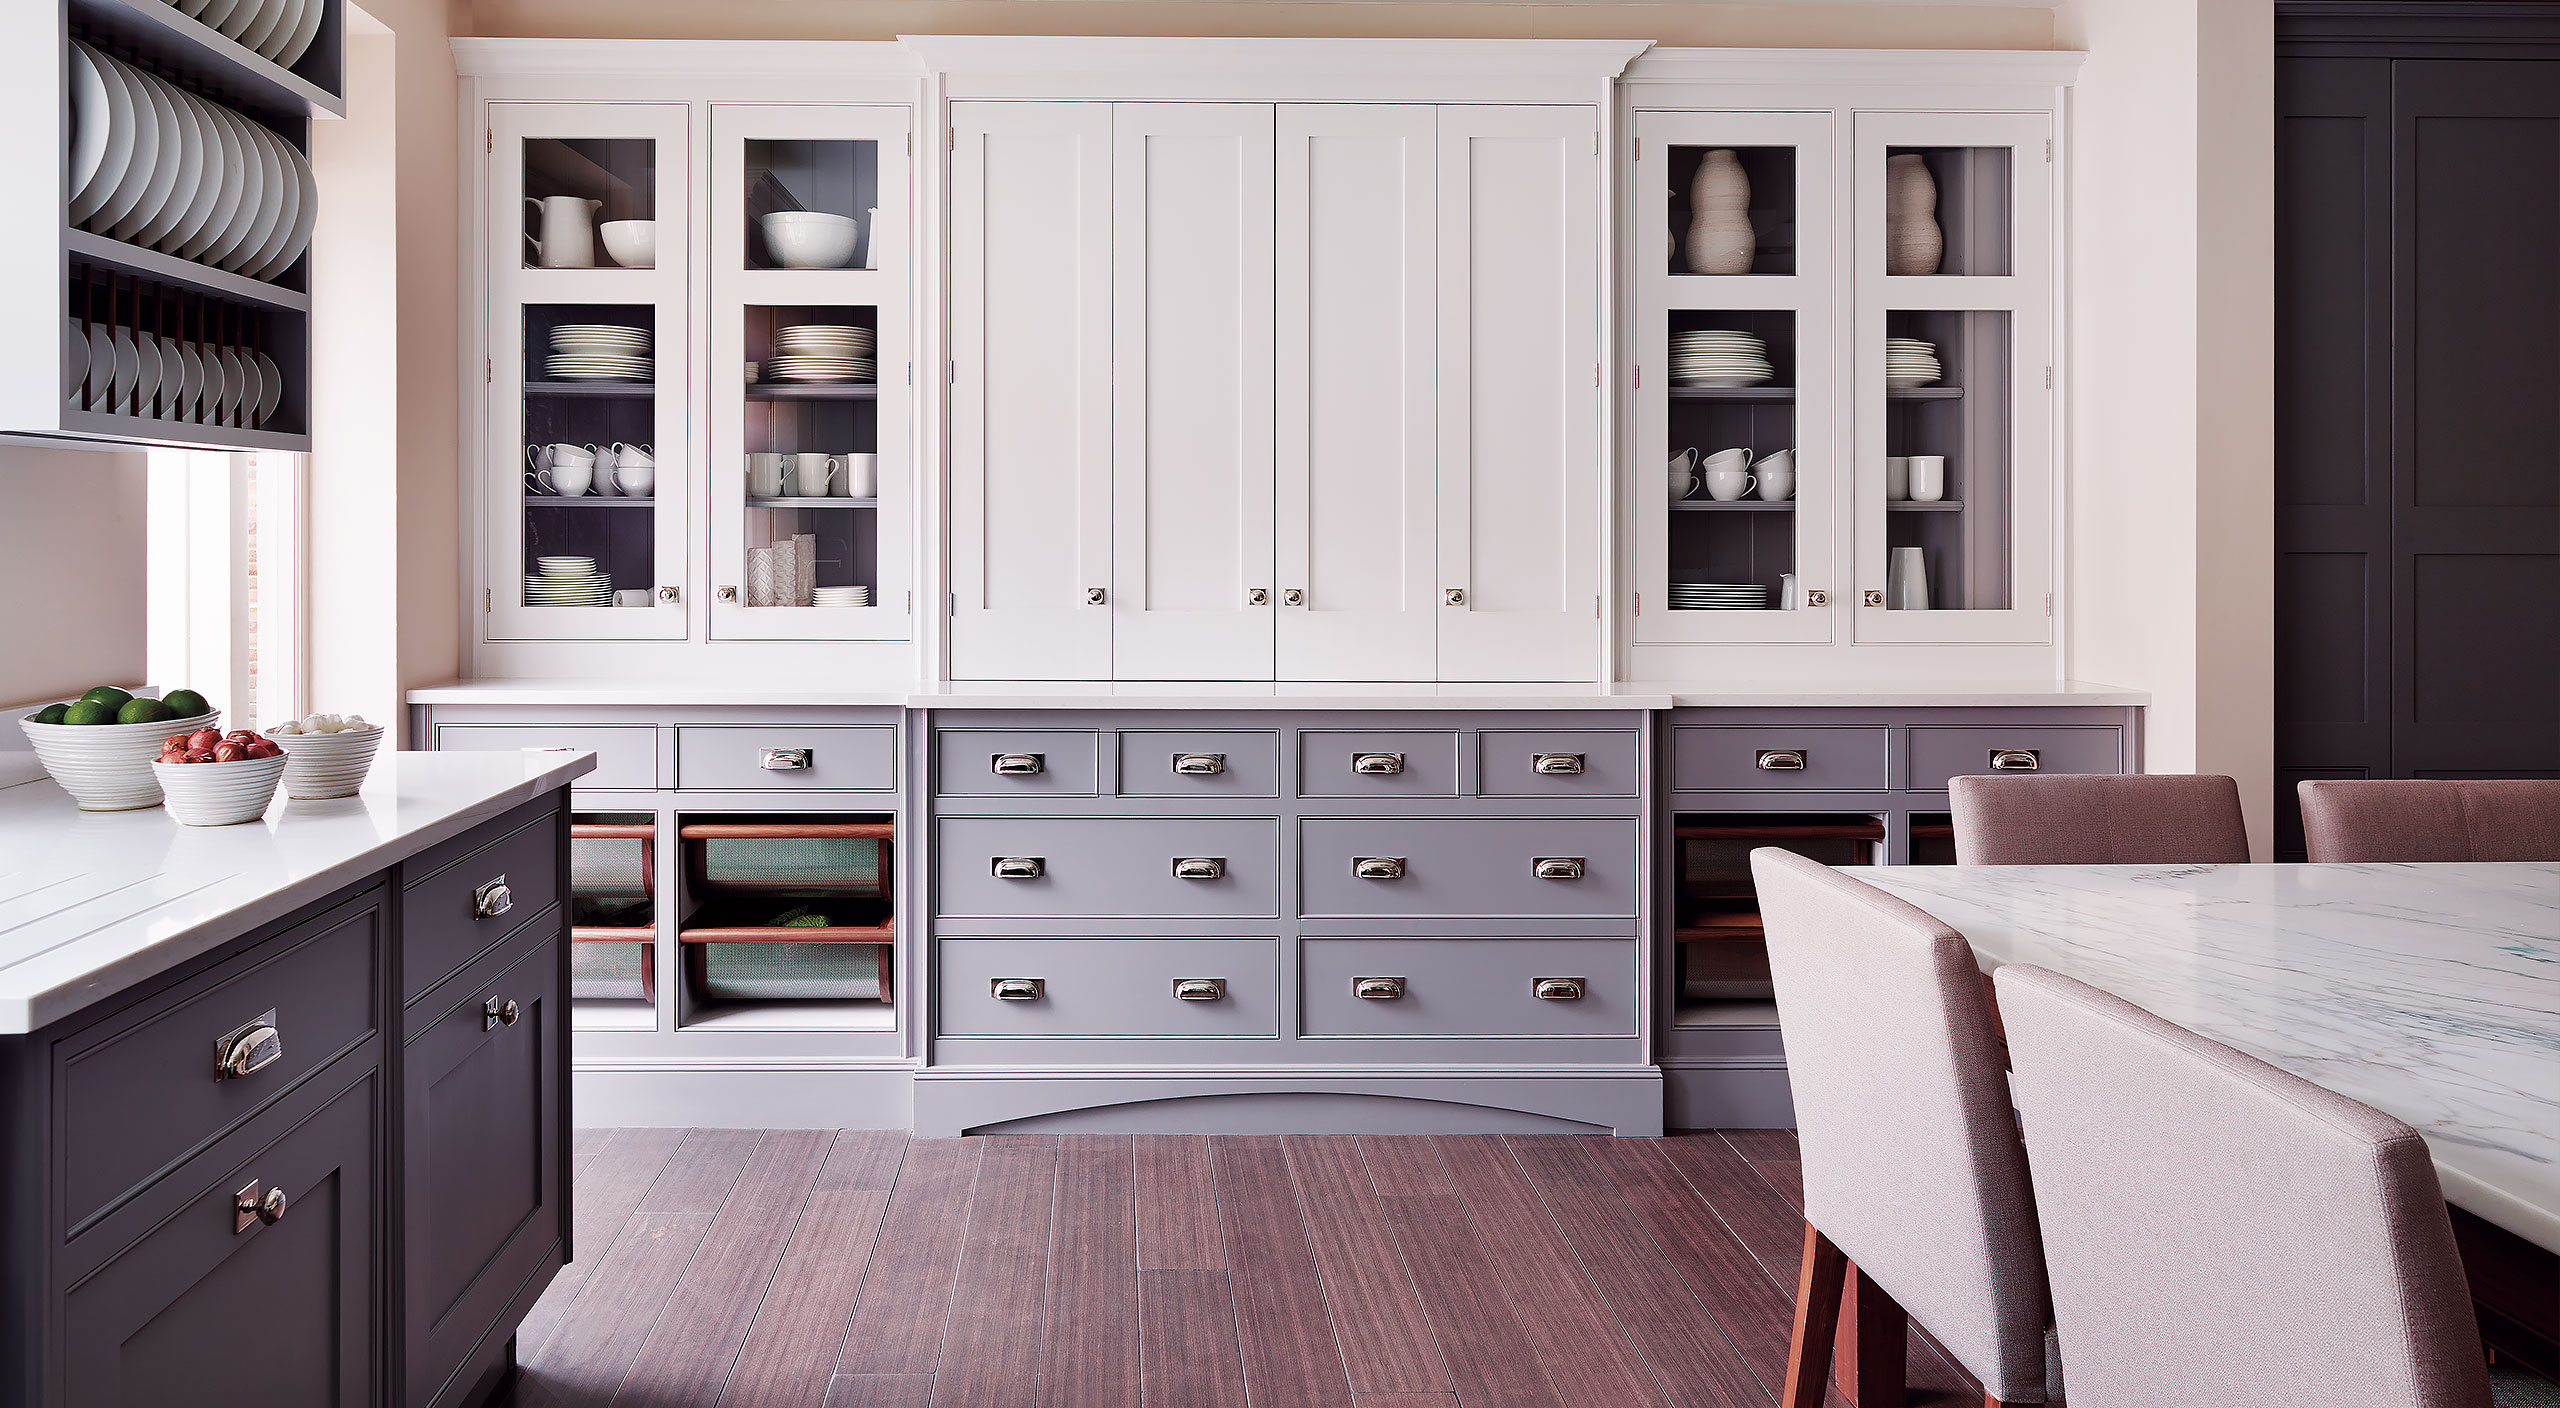 a Smallbone Iconic kitchen with upper cabinetry painted in white and lower cabinetry hand finished in grey